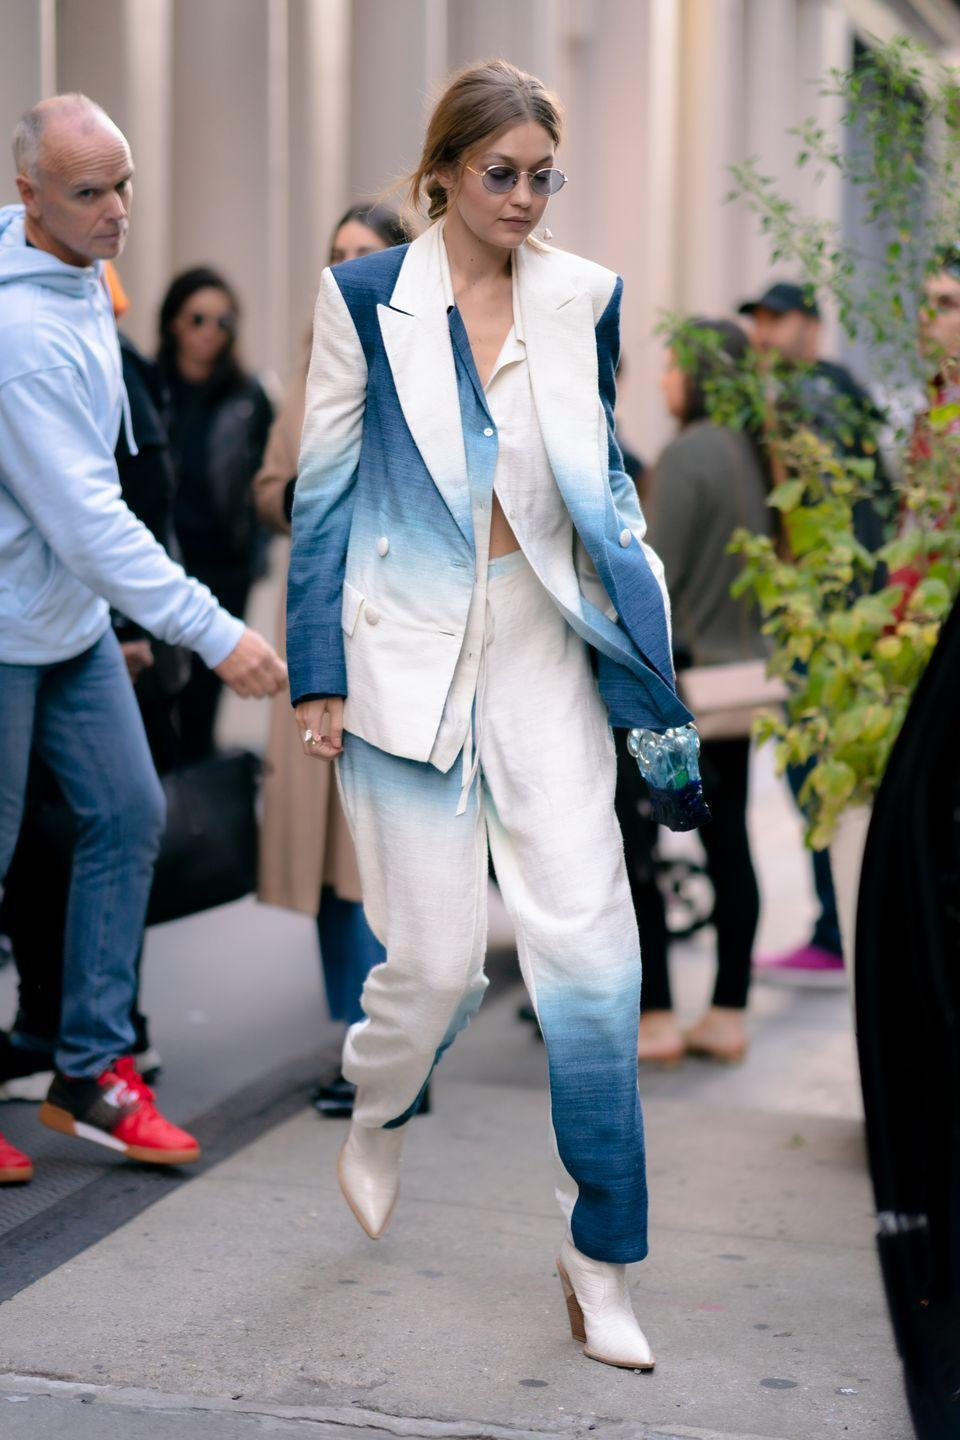 <p>In a blue and white suit by Oscar de la Renta, blue circle shades, and white heeled boots.</p>